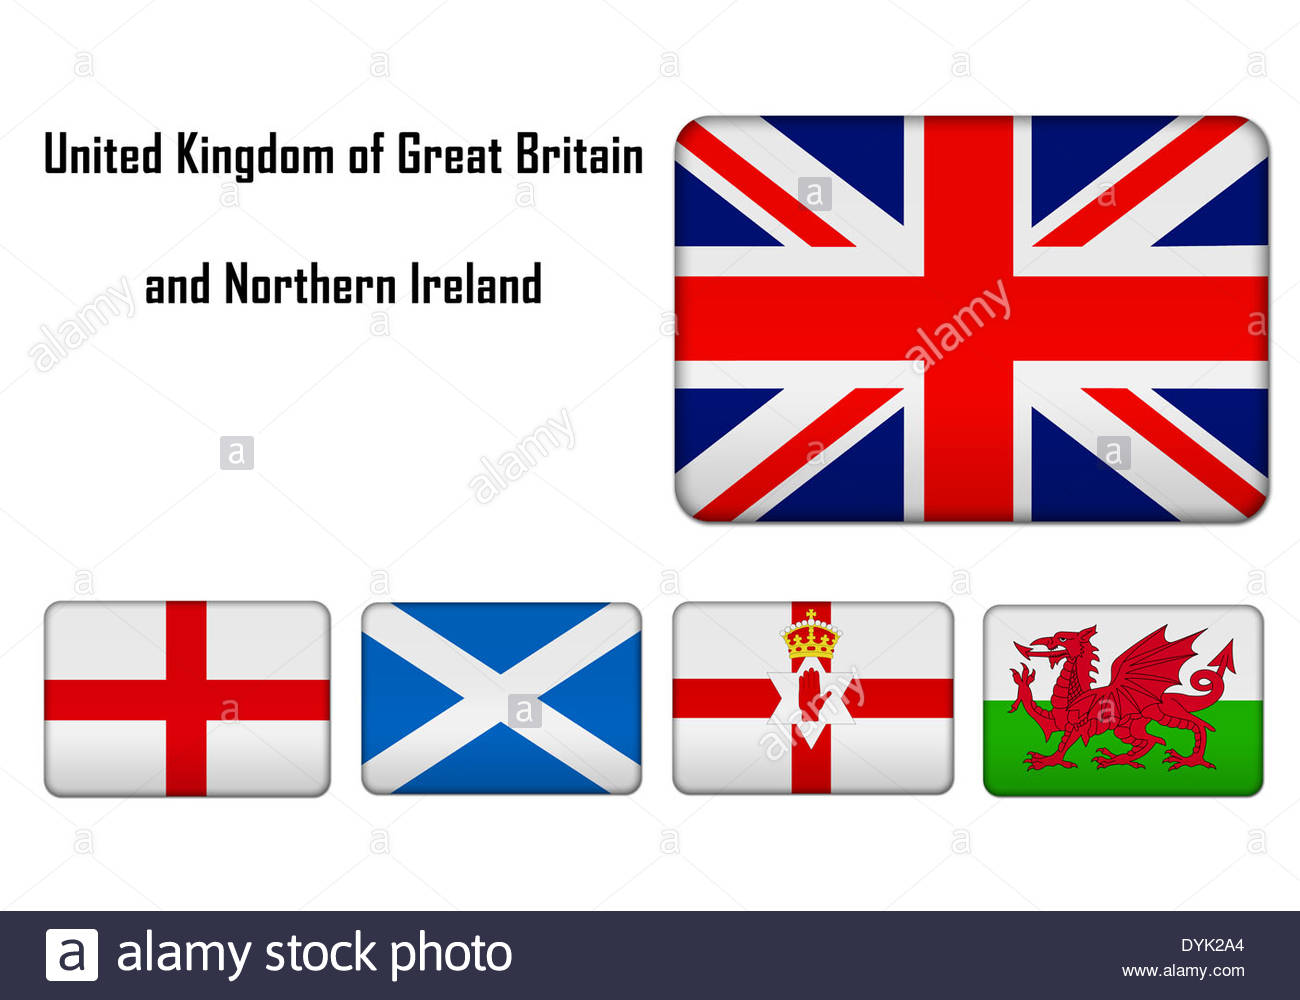 United Kingdom of Great Britain and Northern Ireland - flags and